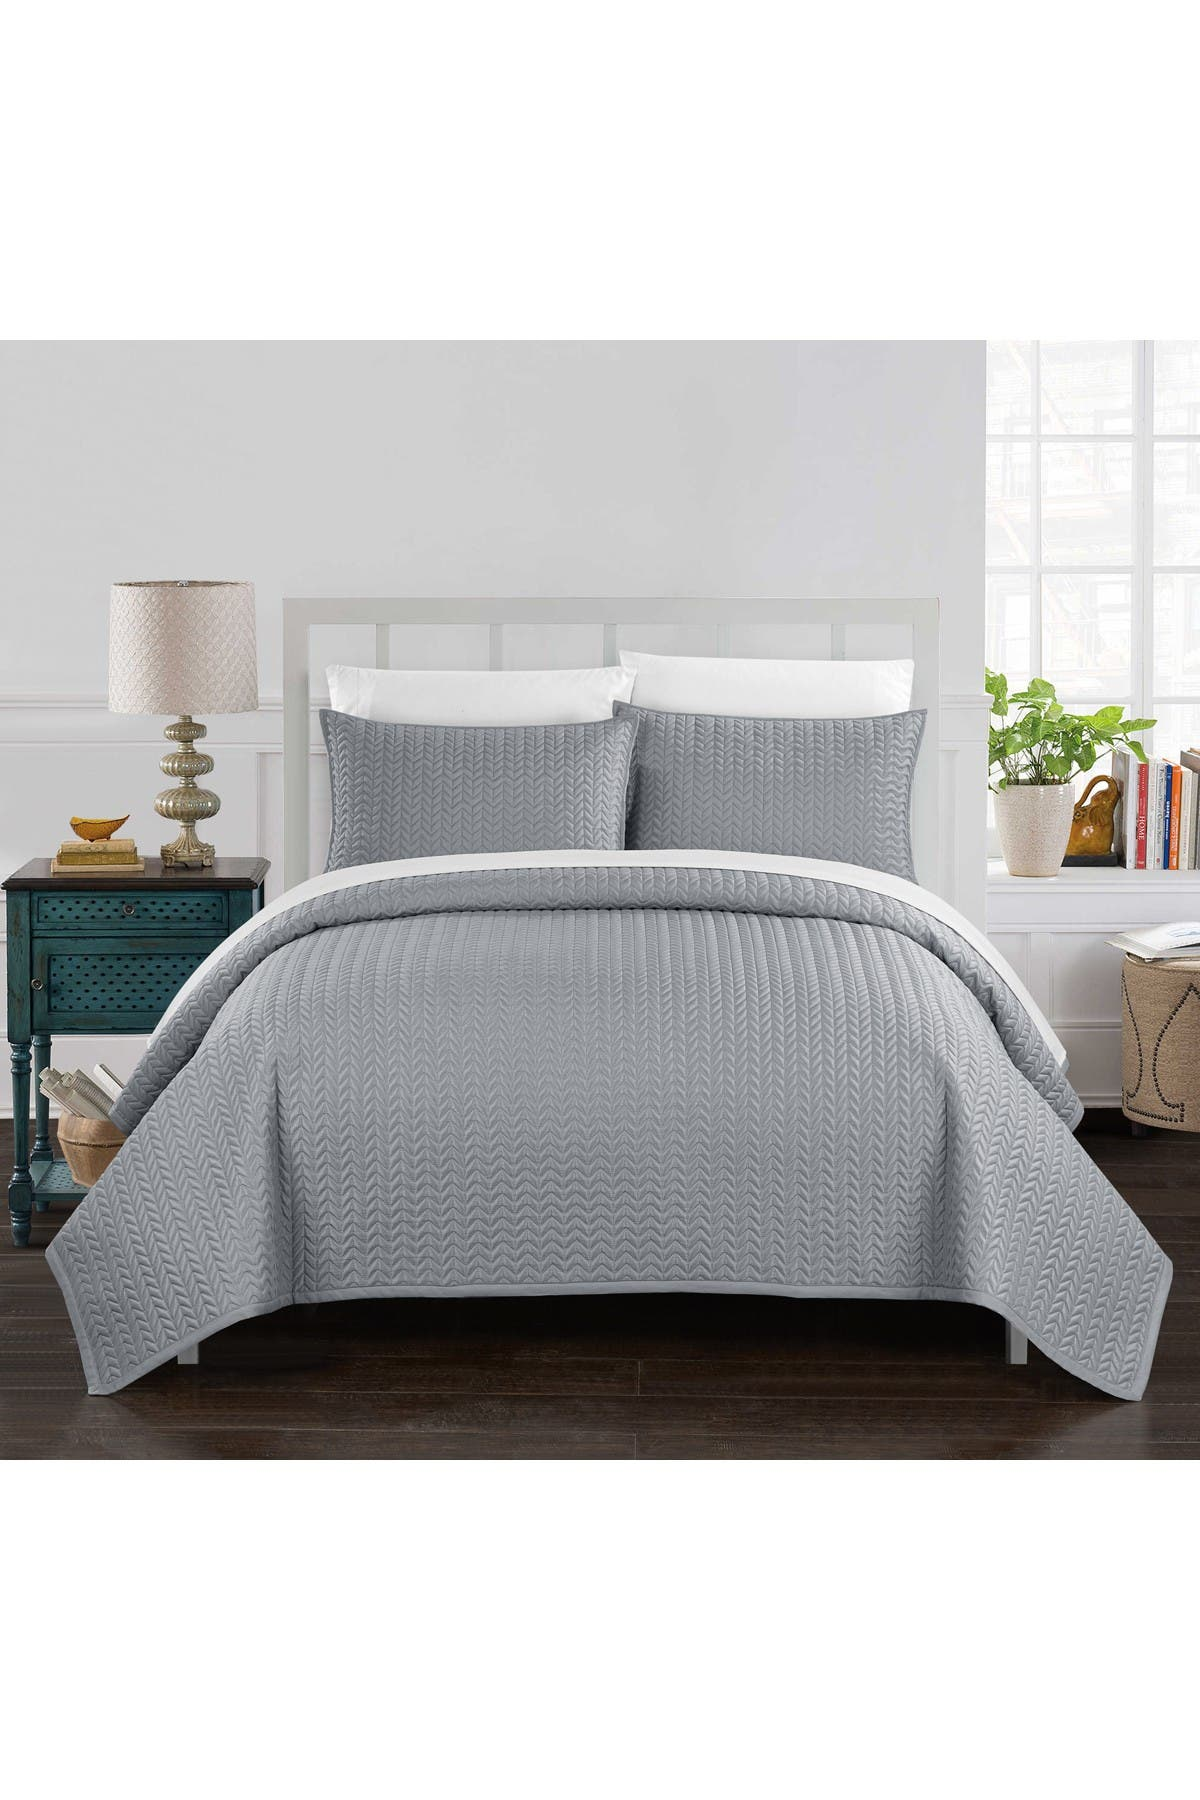 Image of Chic Home Bedding Queen Platt Geometric Chevron Quilt Set - Silver